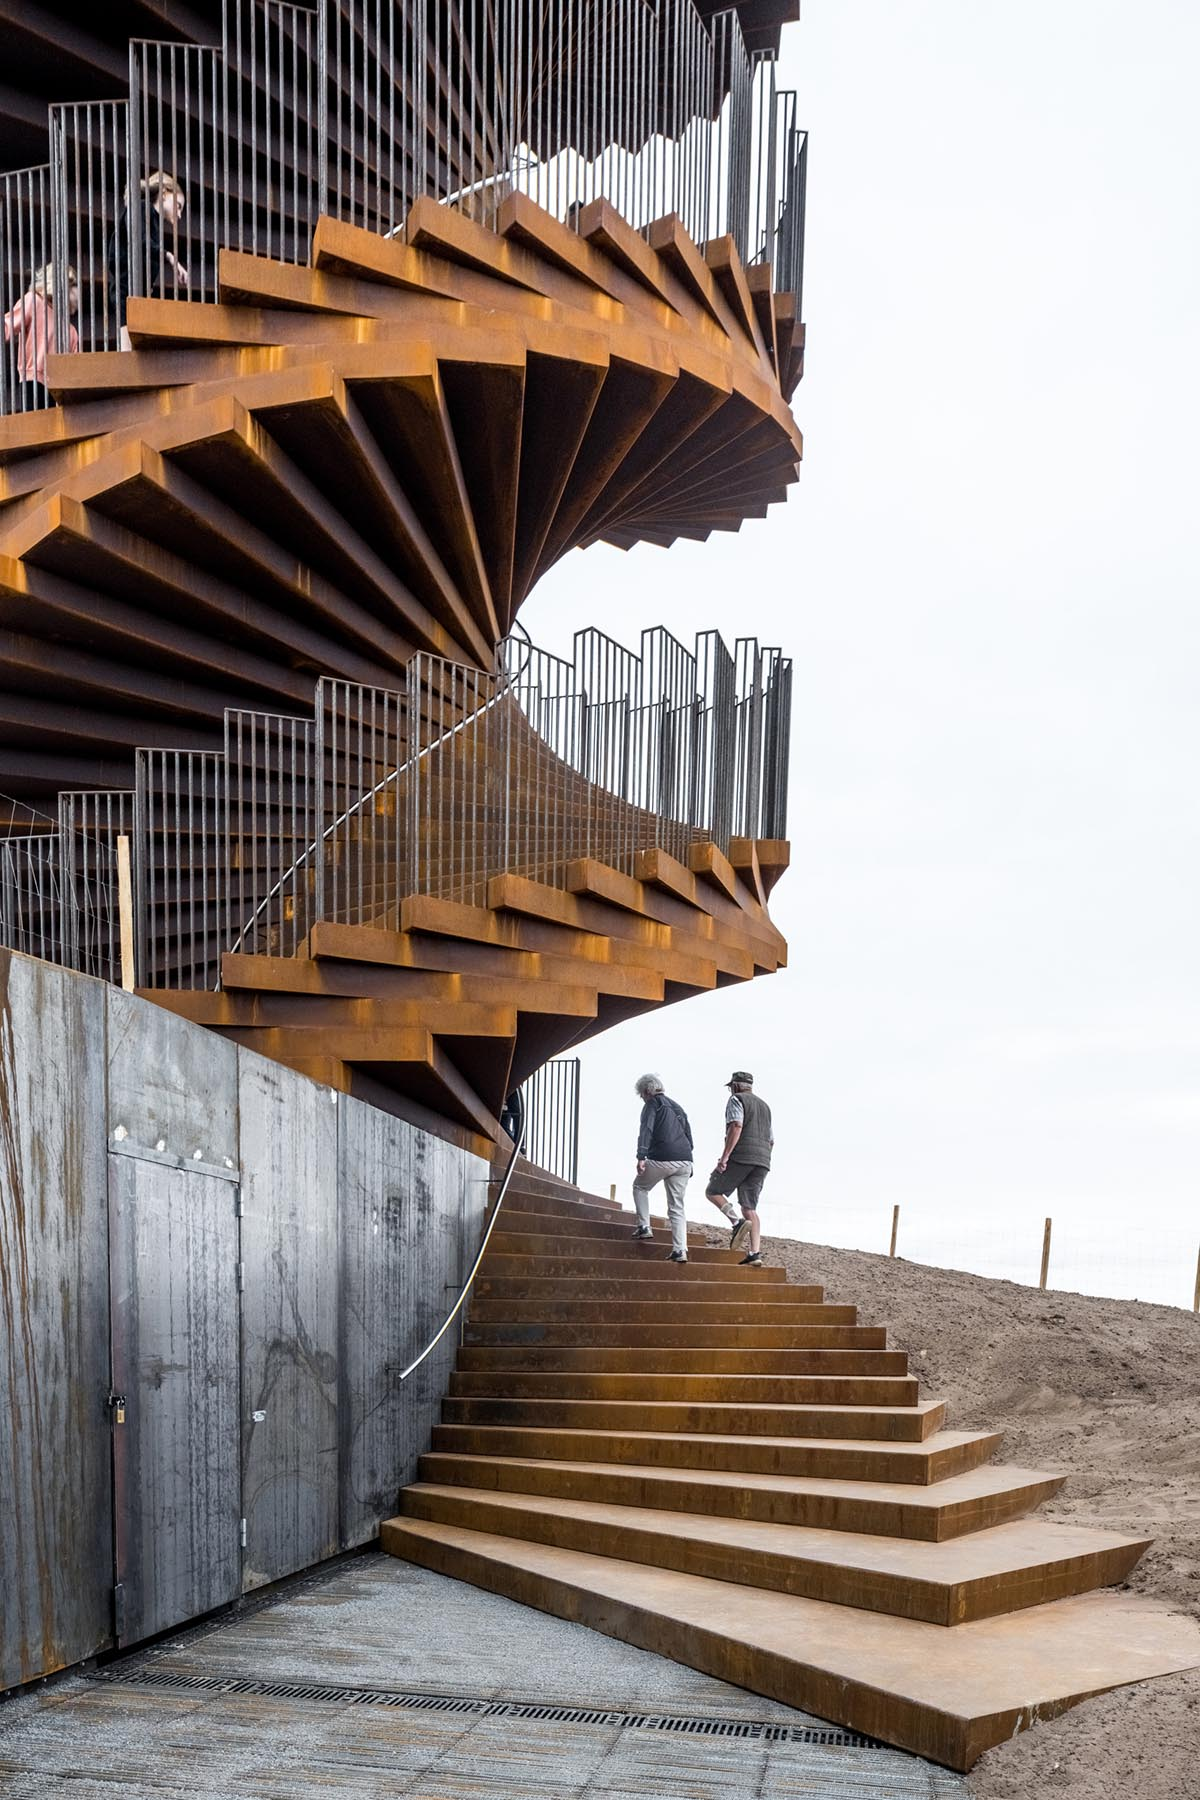 A new spiraling lookout tower in Denmark made from weathered steel.